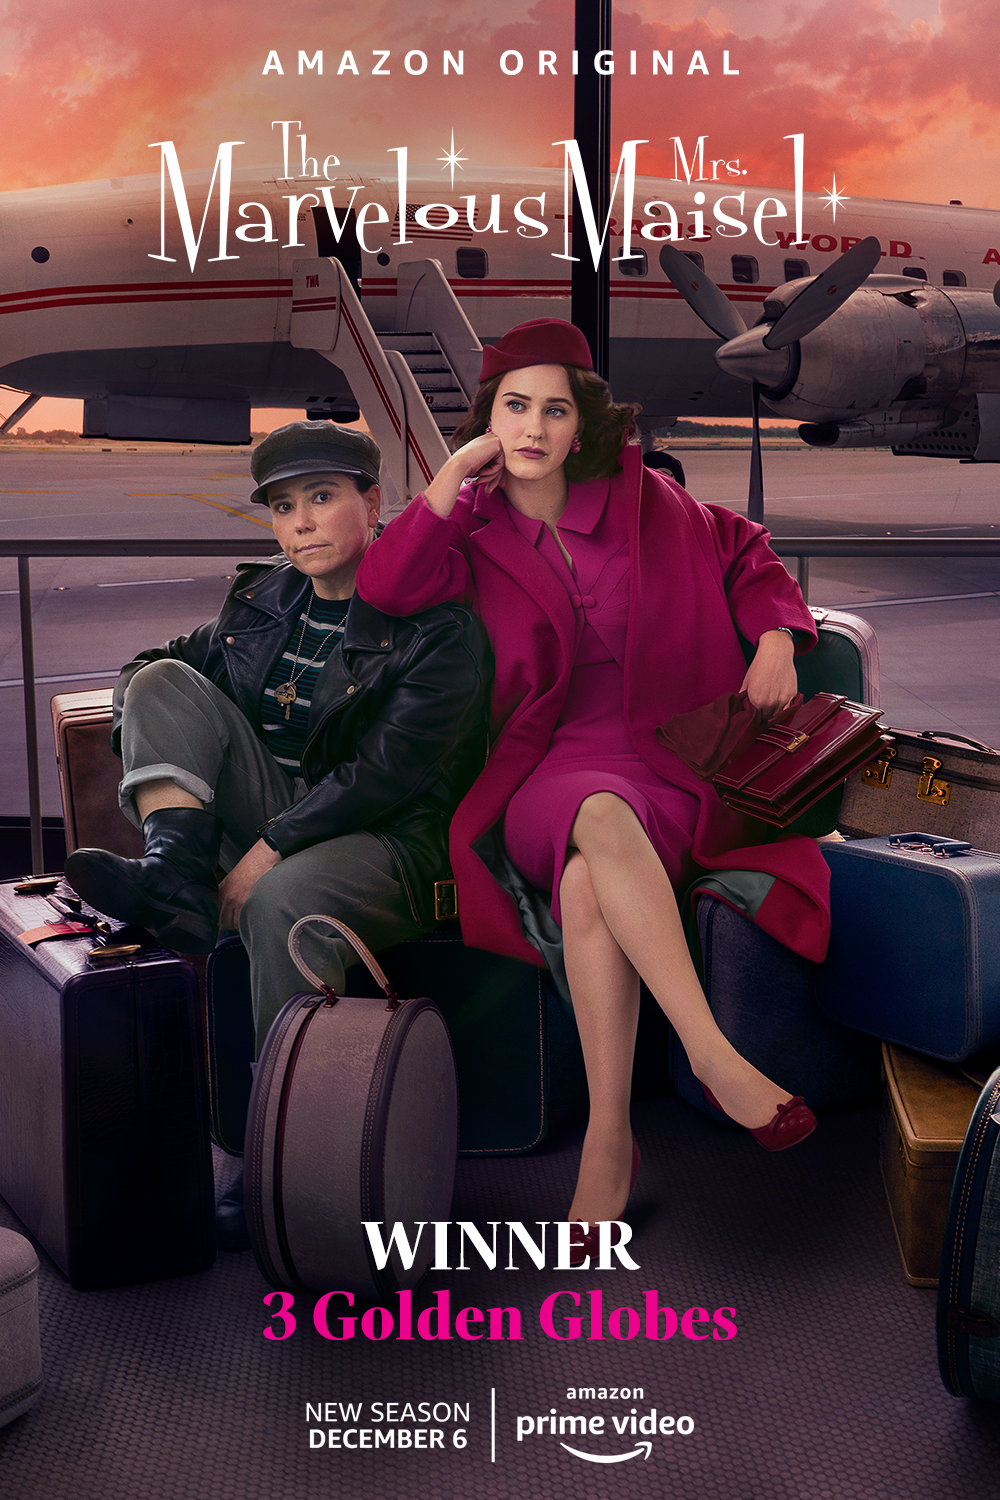 Watch Marvelous Mrs Maisel S3 Only On Primevideo Com Amazon Prime Movies Amazon Prime Shows Prime Movies